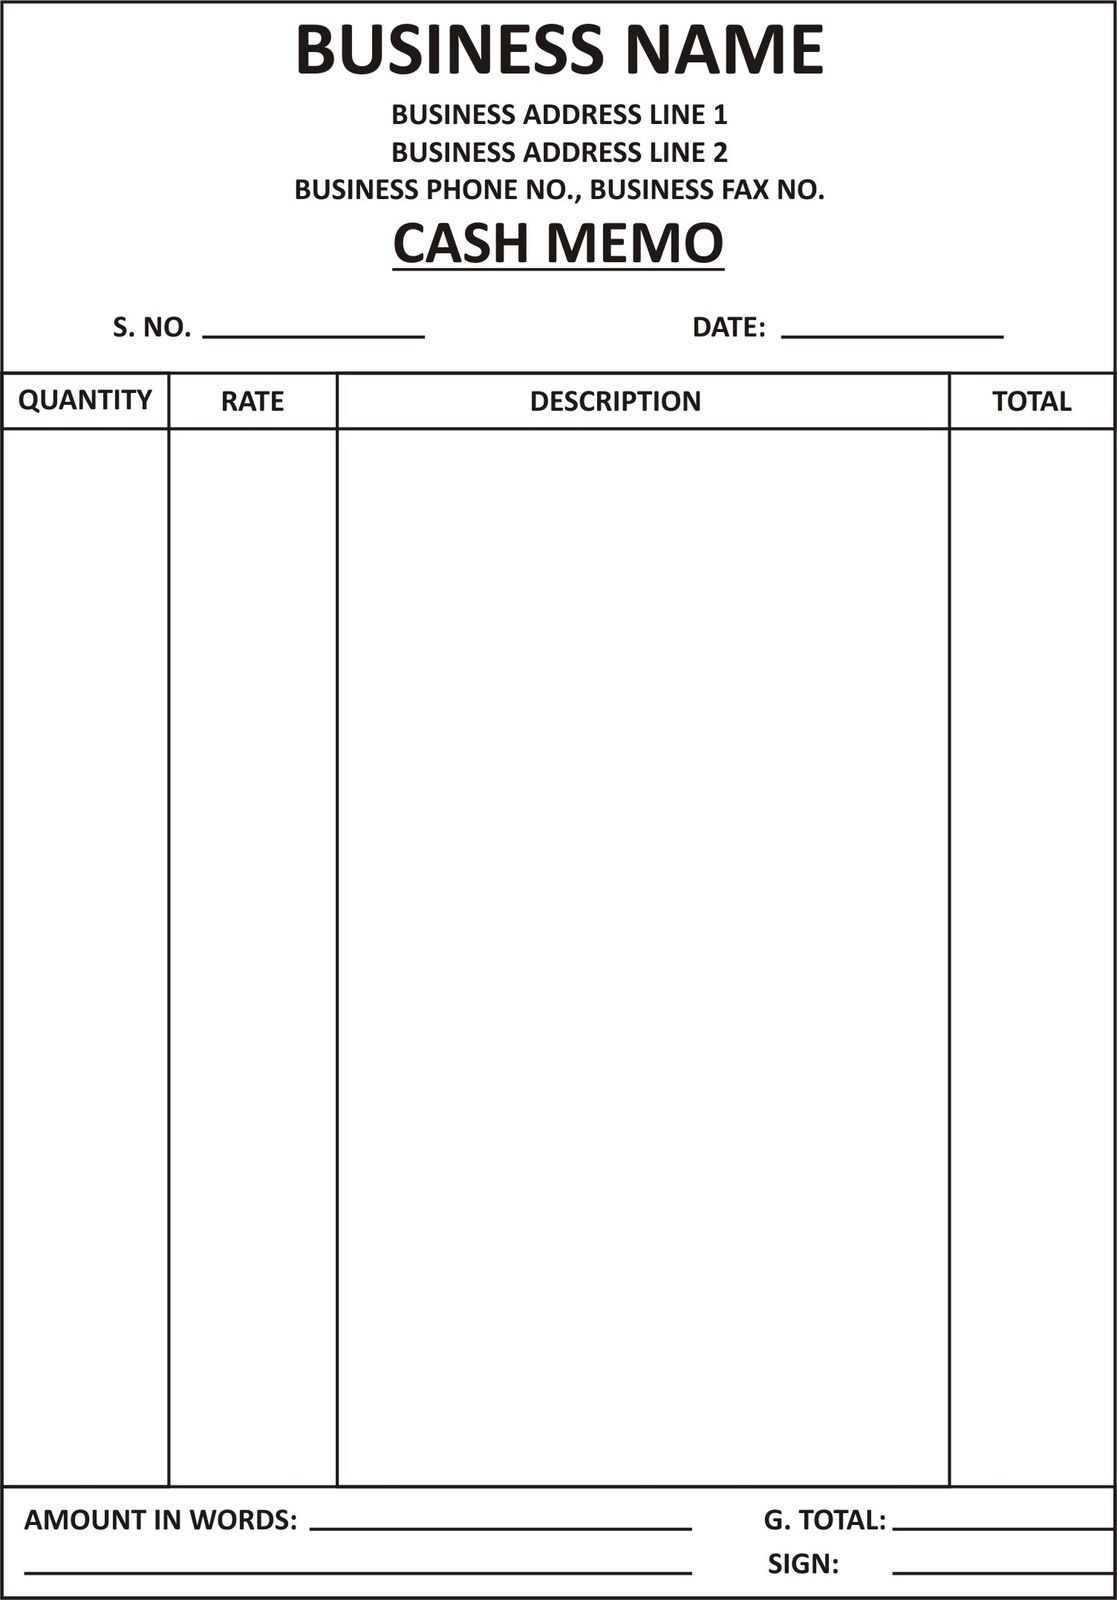 cash bill format submited images pic 2 fly invoice format hotel ke bill format image